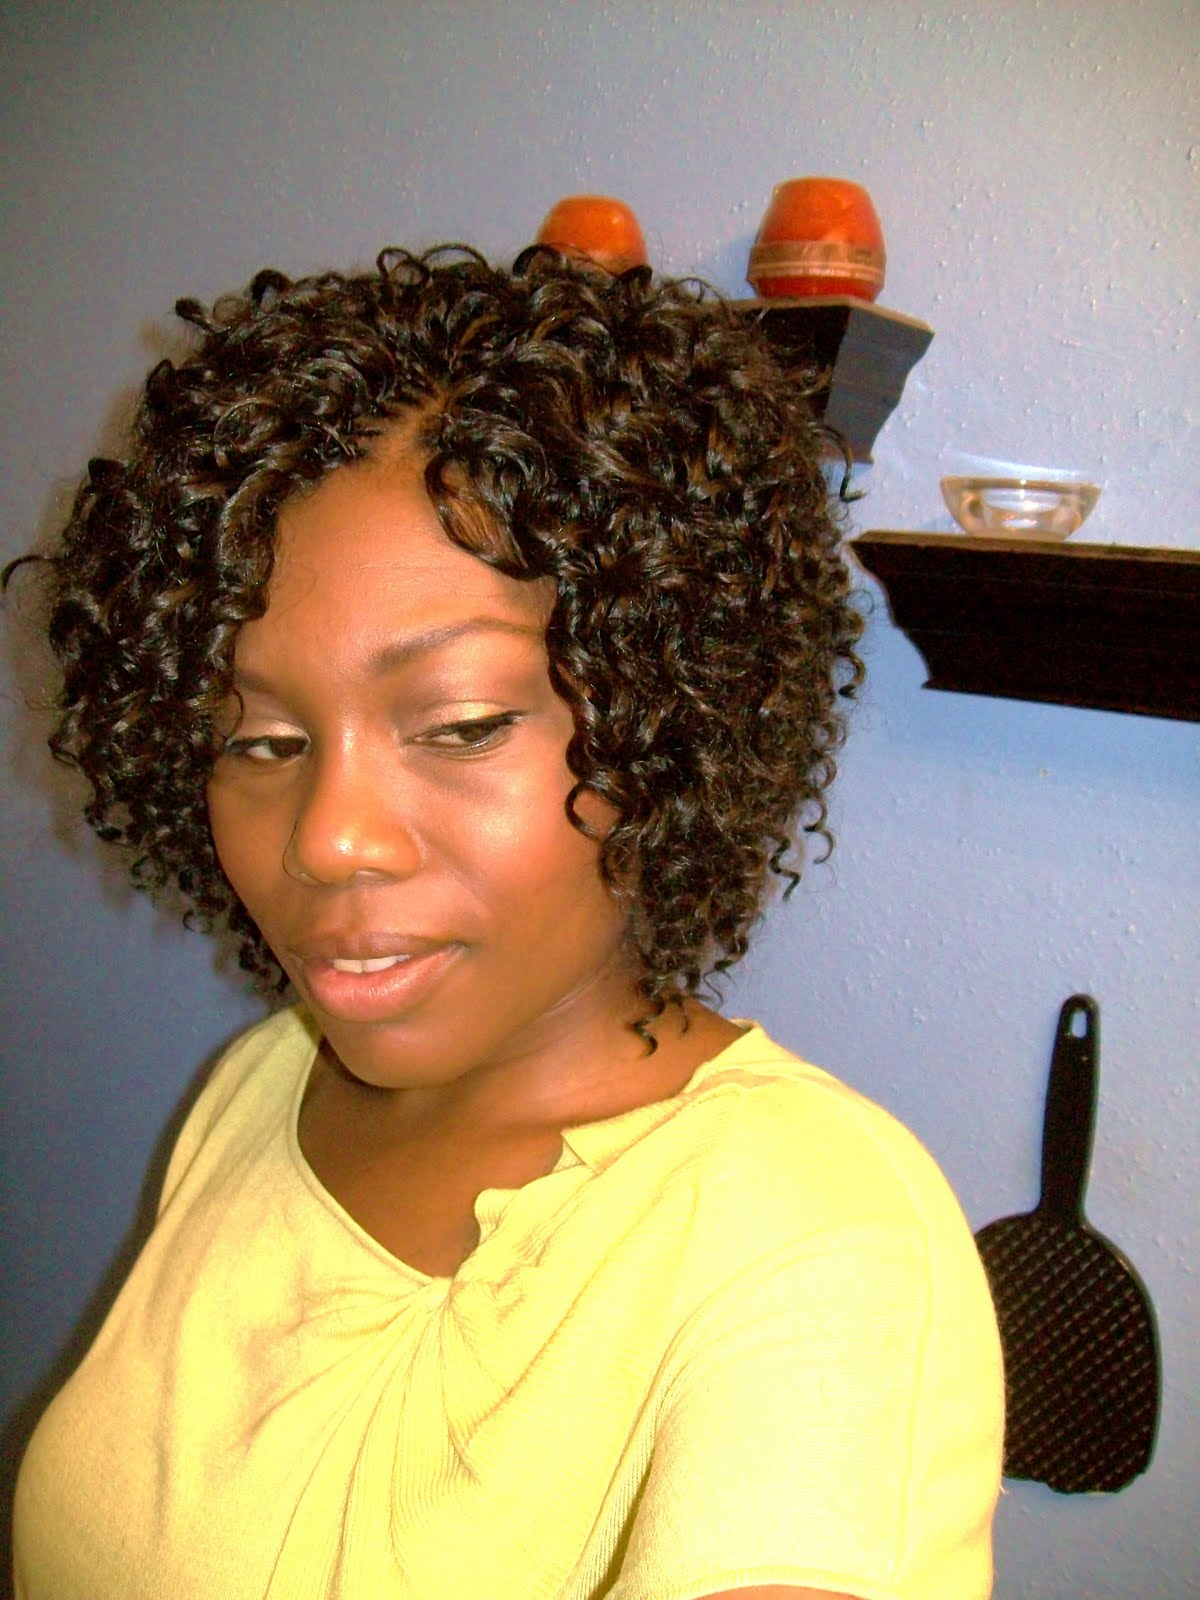 Crochet Braids Curly Afro : Protective style 13 months post - Crochet braids (FAV style)